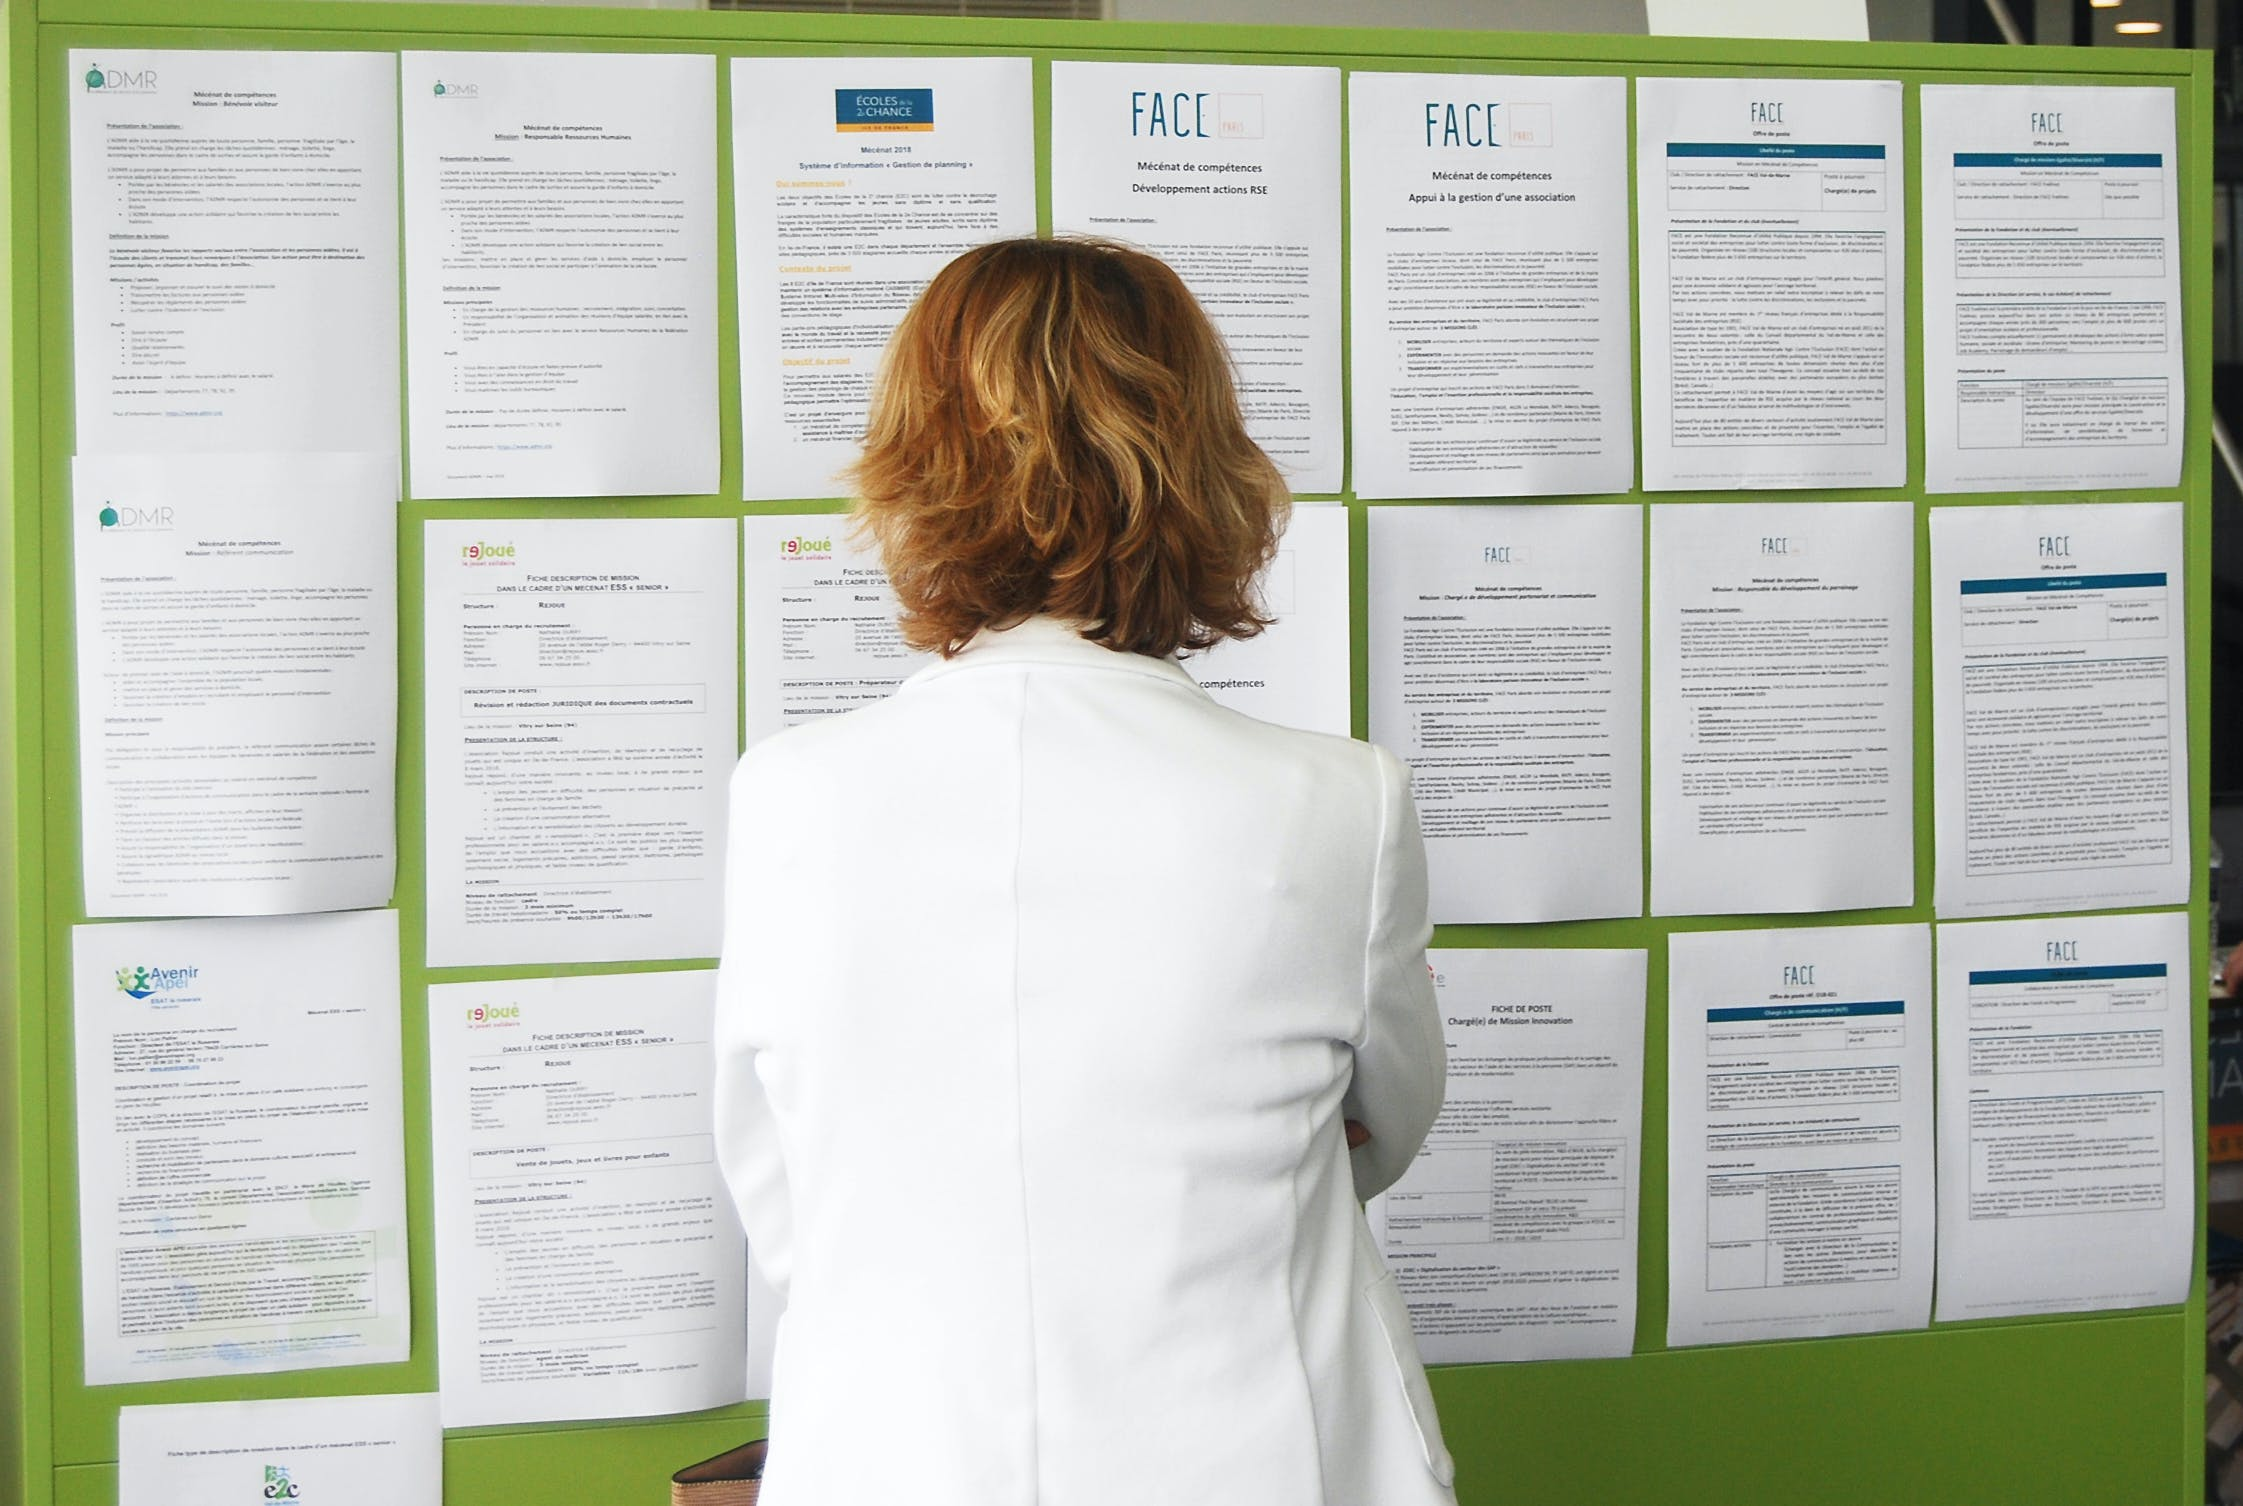 A candidate looking at job offers